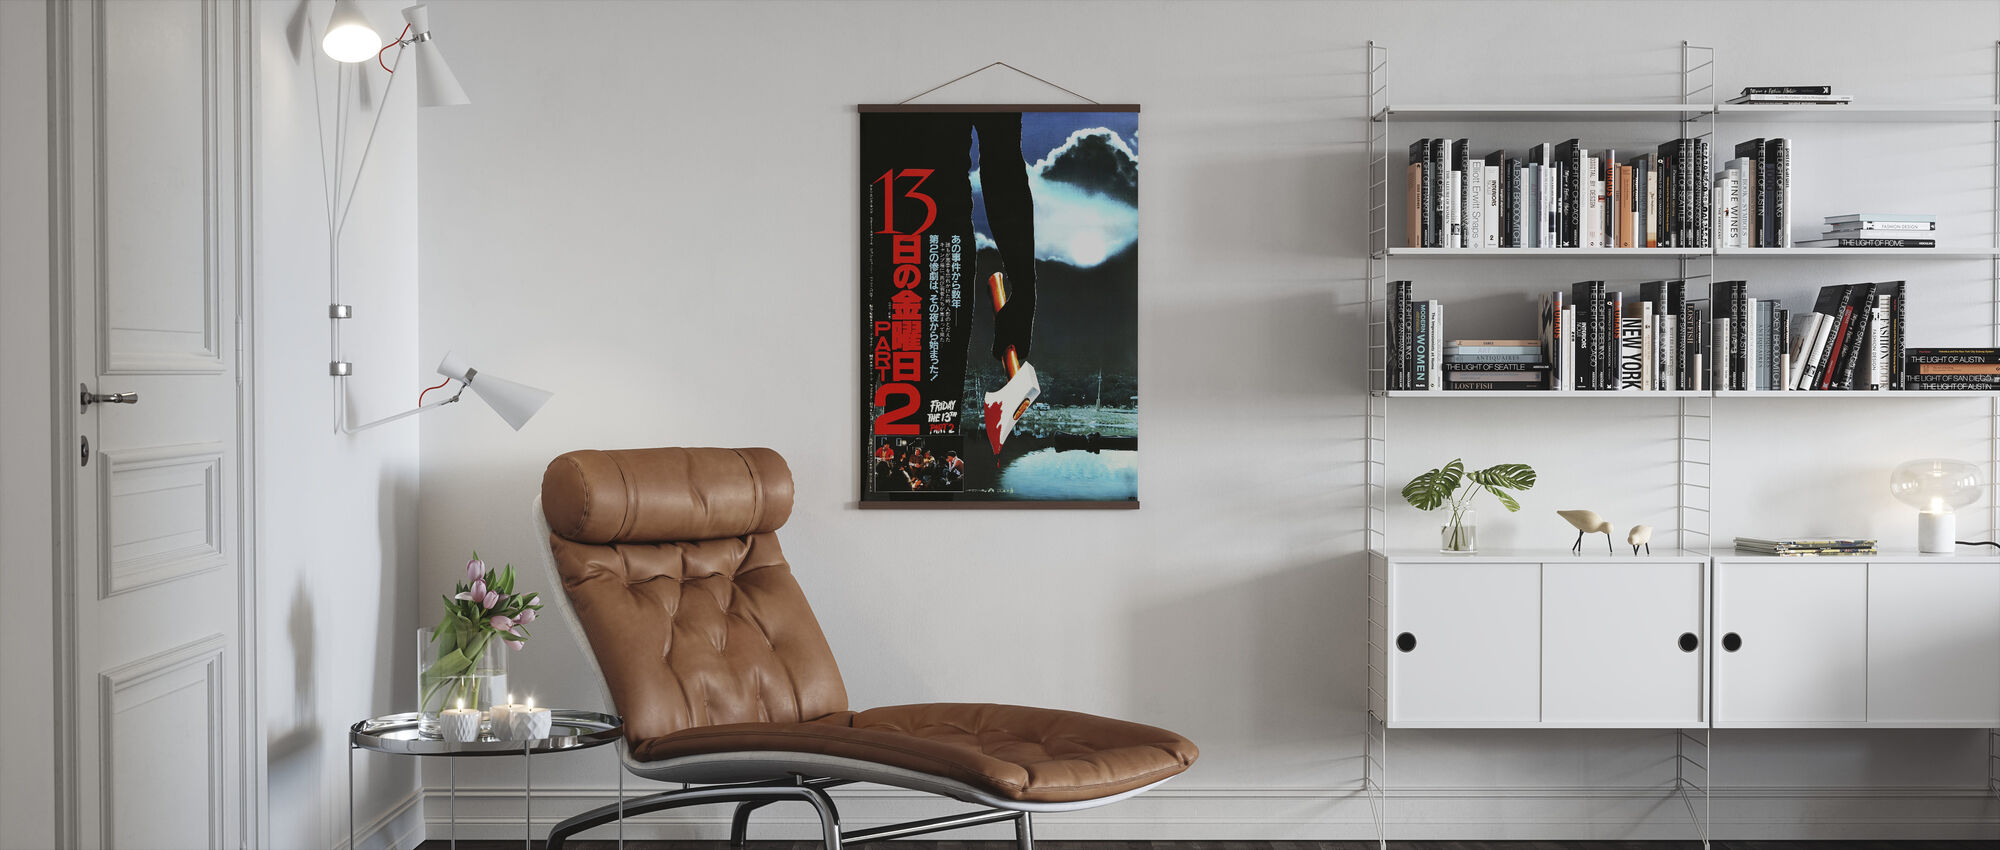 Friday the 13th Part 2 - Poster - Living Room